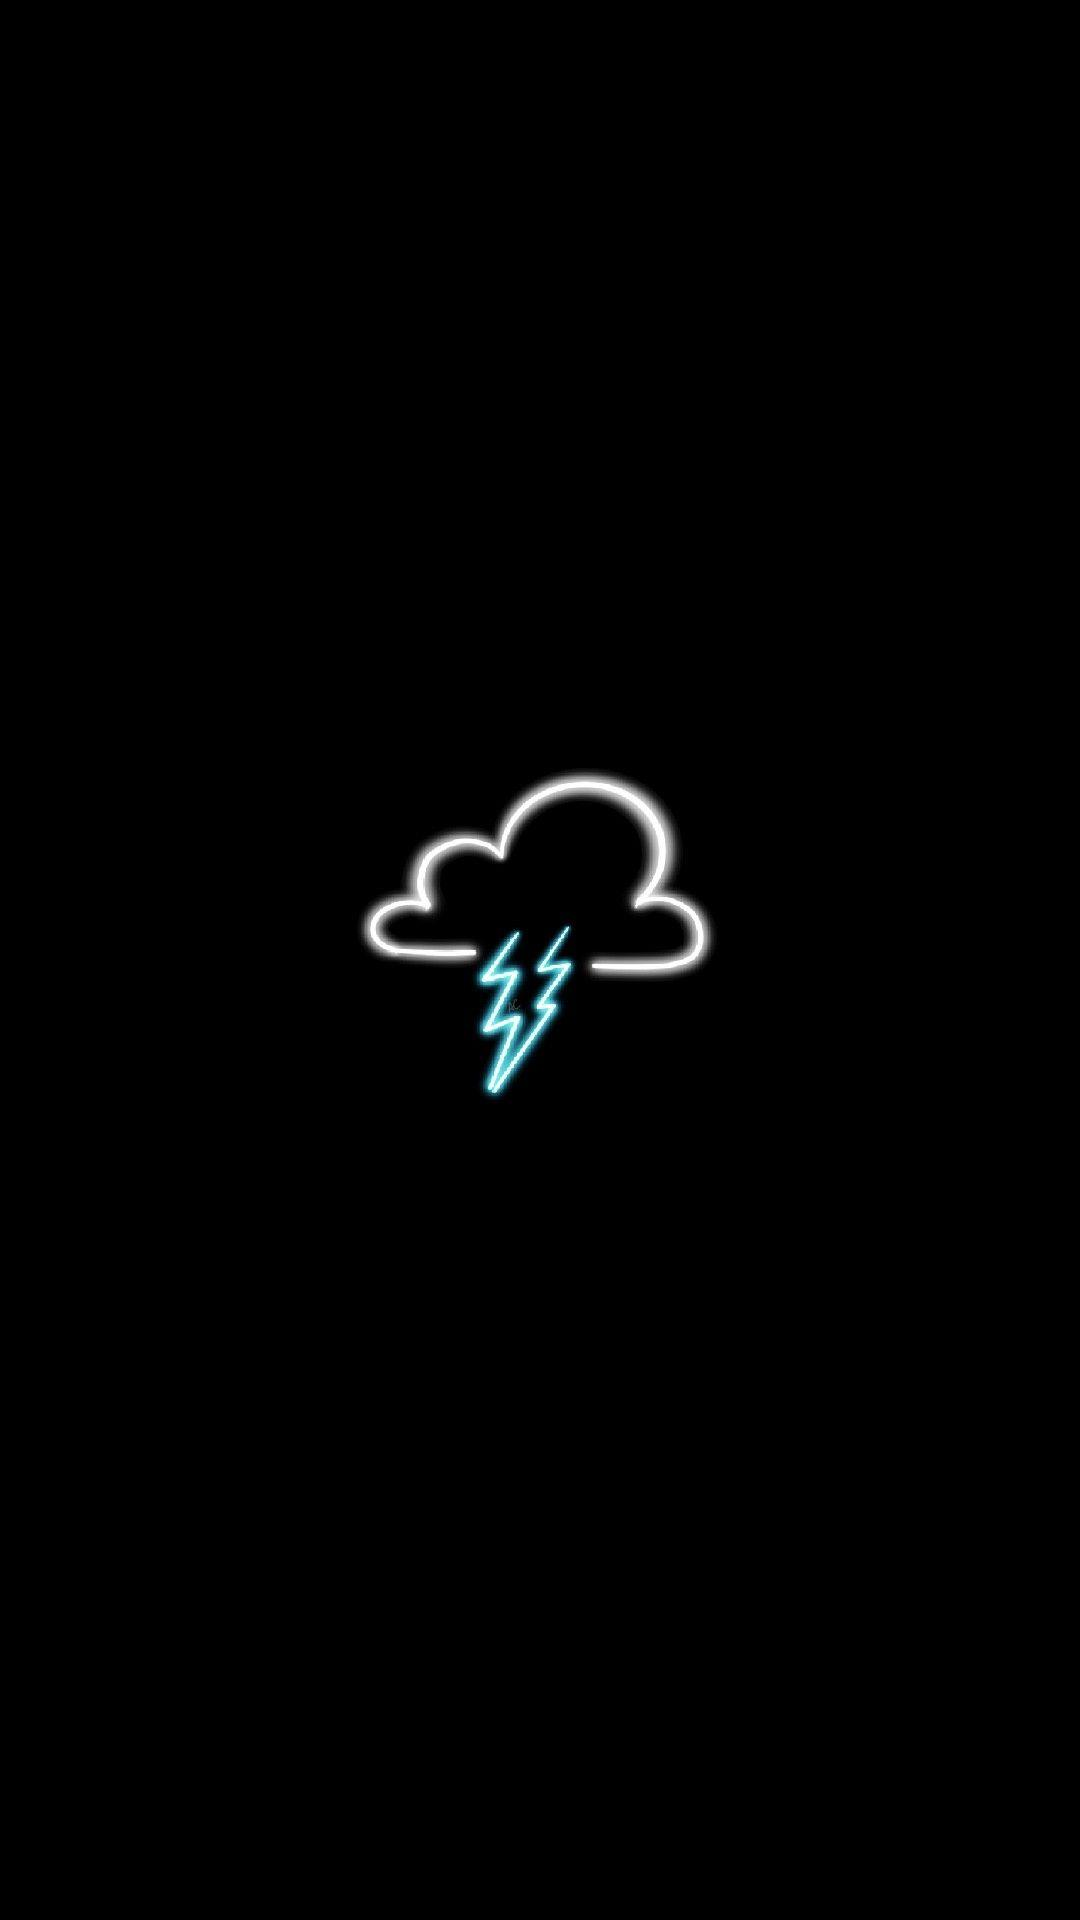 Aesthetic Hd Sad Vibes Wallpapers Wallpaper Cave